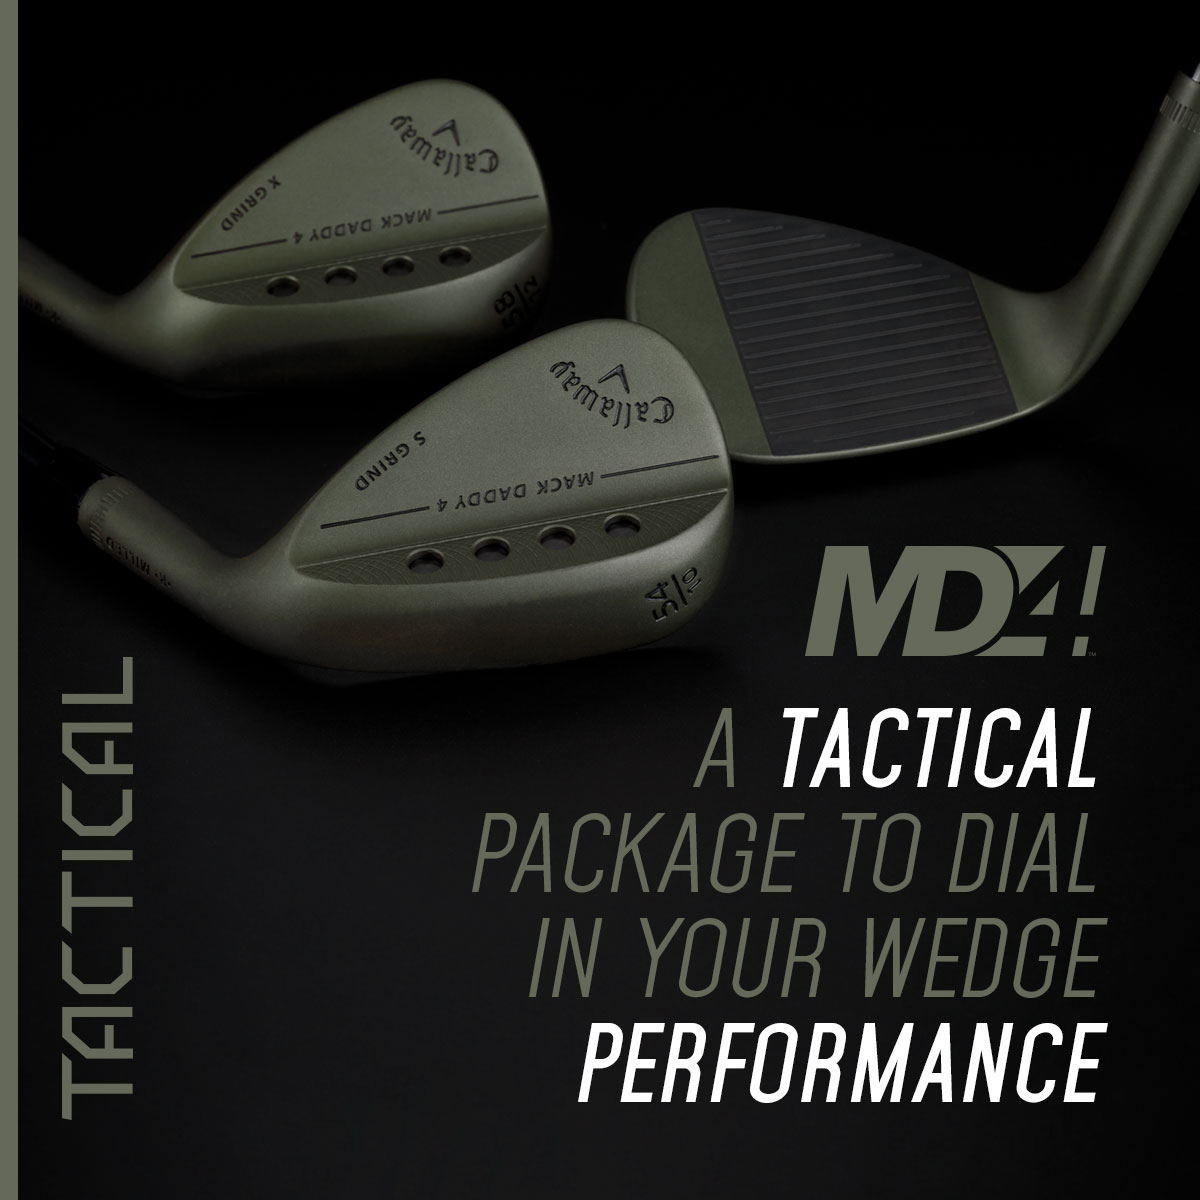 Callaway Release Limited Edition MD4 Tactical Wedge